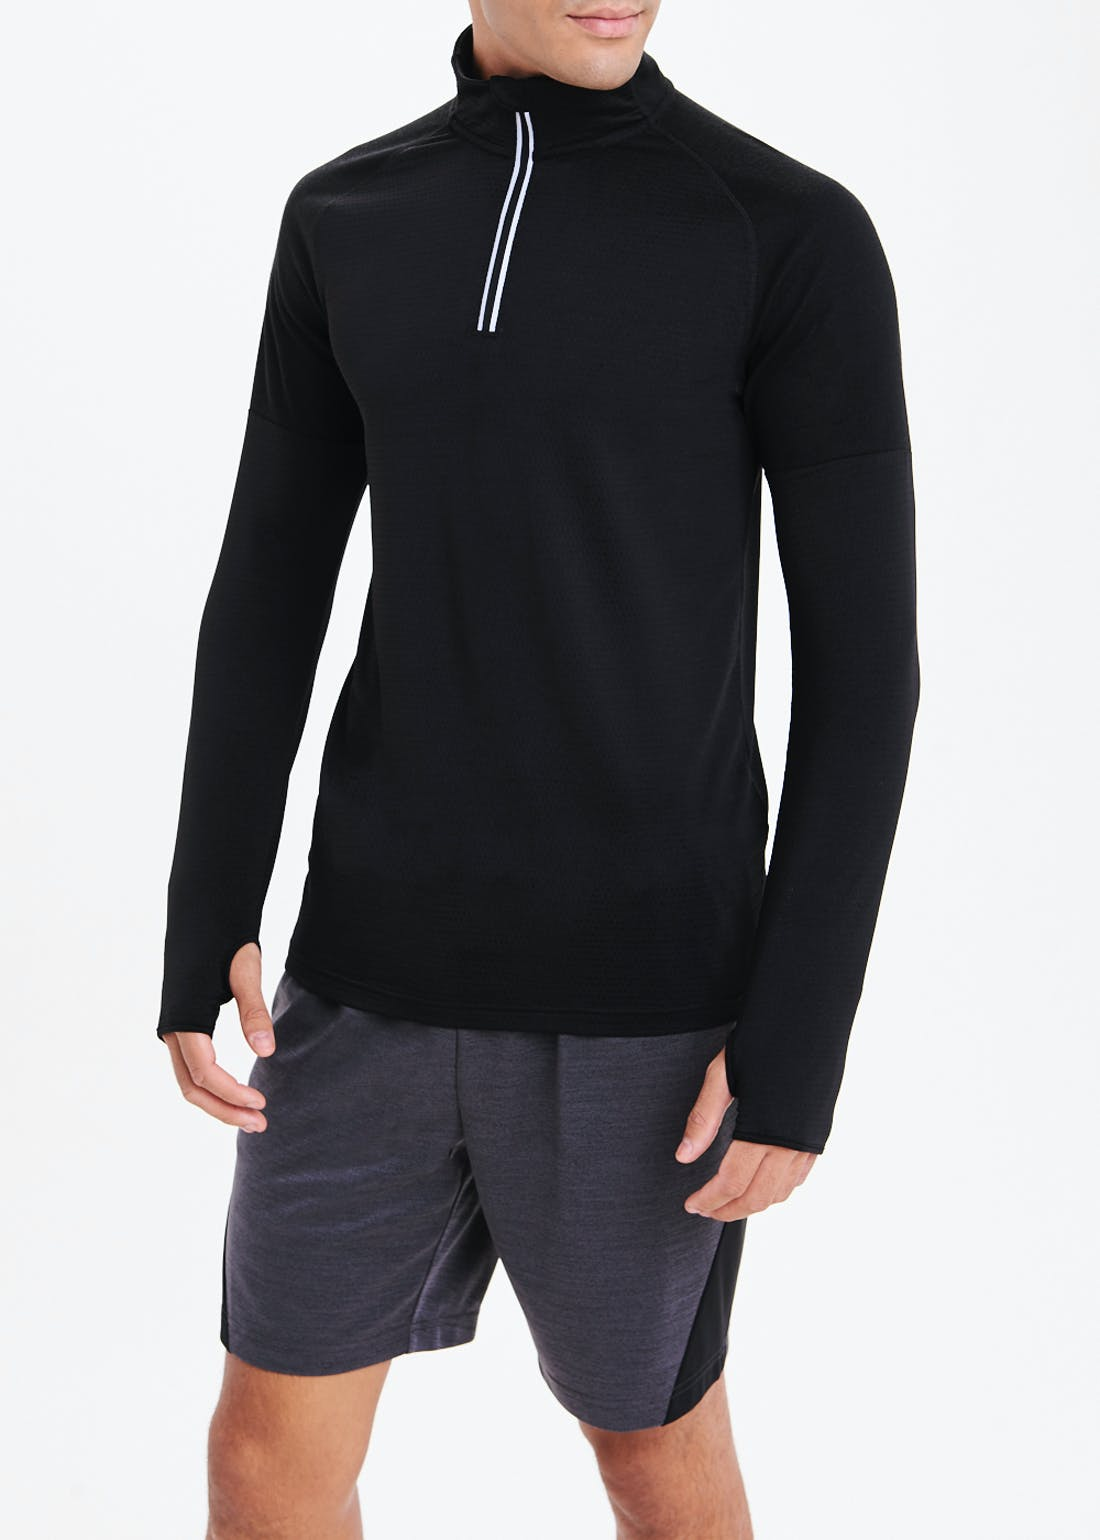 Souluxe Black Half Zip Sports Sweatshirt